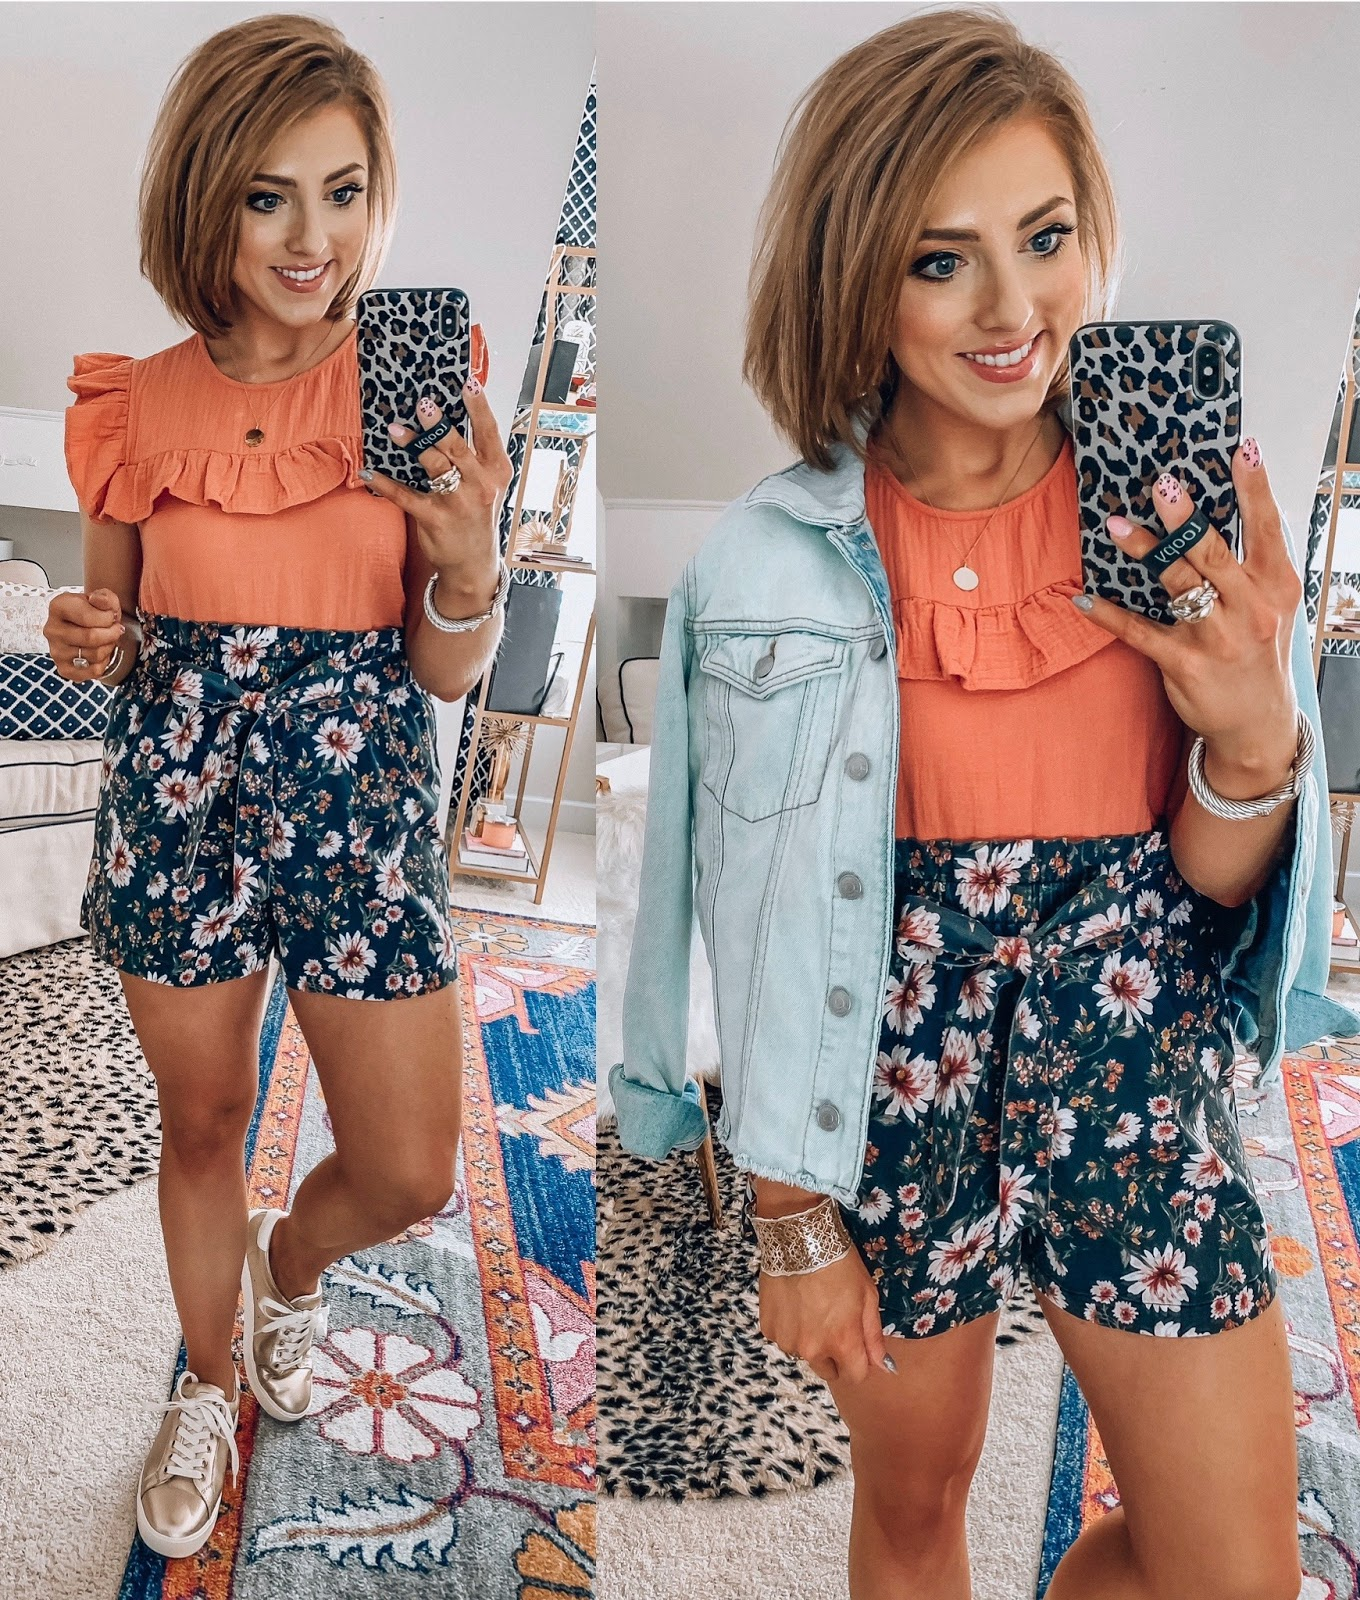 Target Finds: Spring 2020 - Something Delightful Blog - #TargetStyle Dresses, Shorts, Tops, Shoes and Accessories #TargetSpring #SpringStyle2020 #AffordableStyle